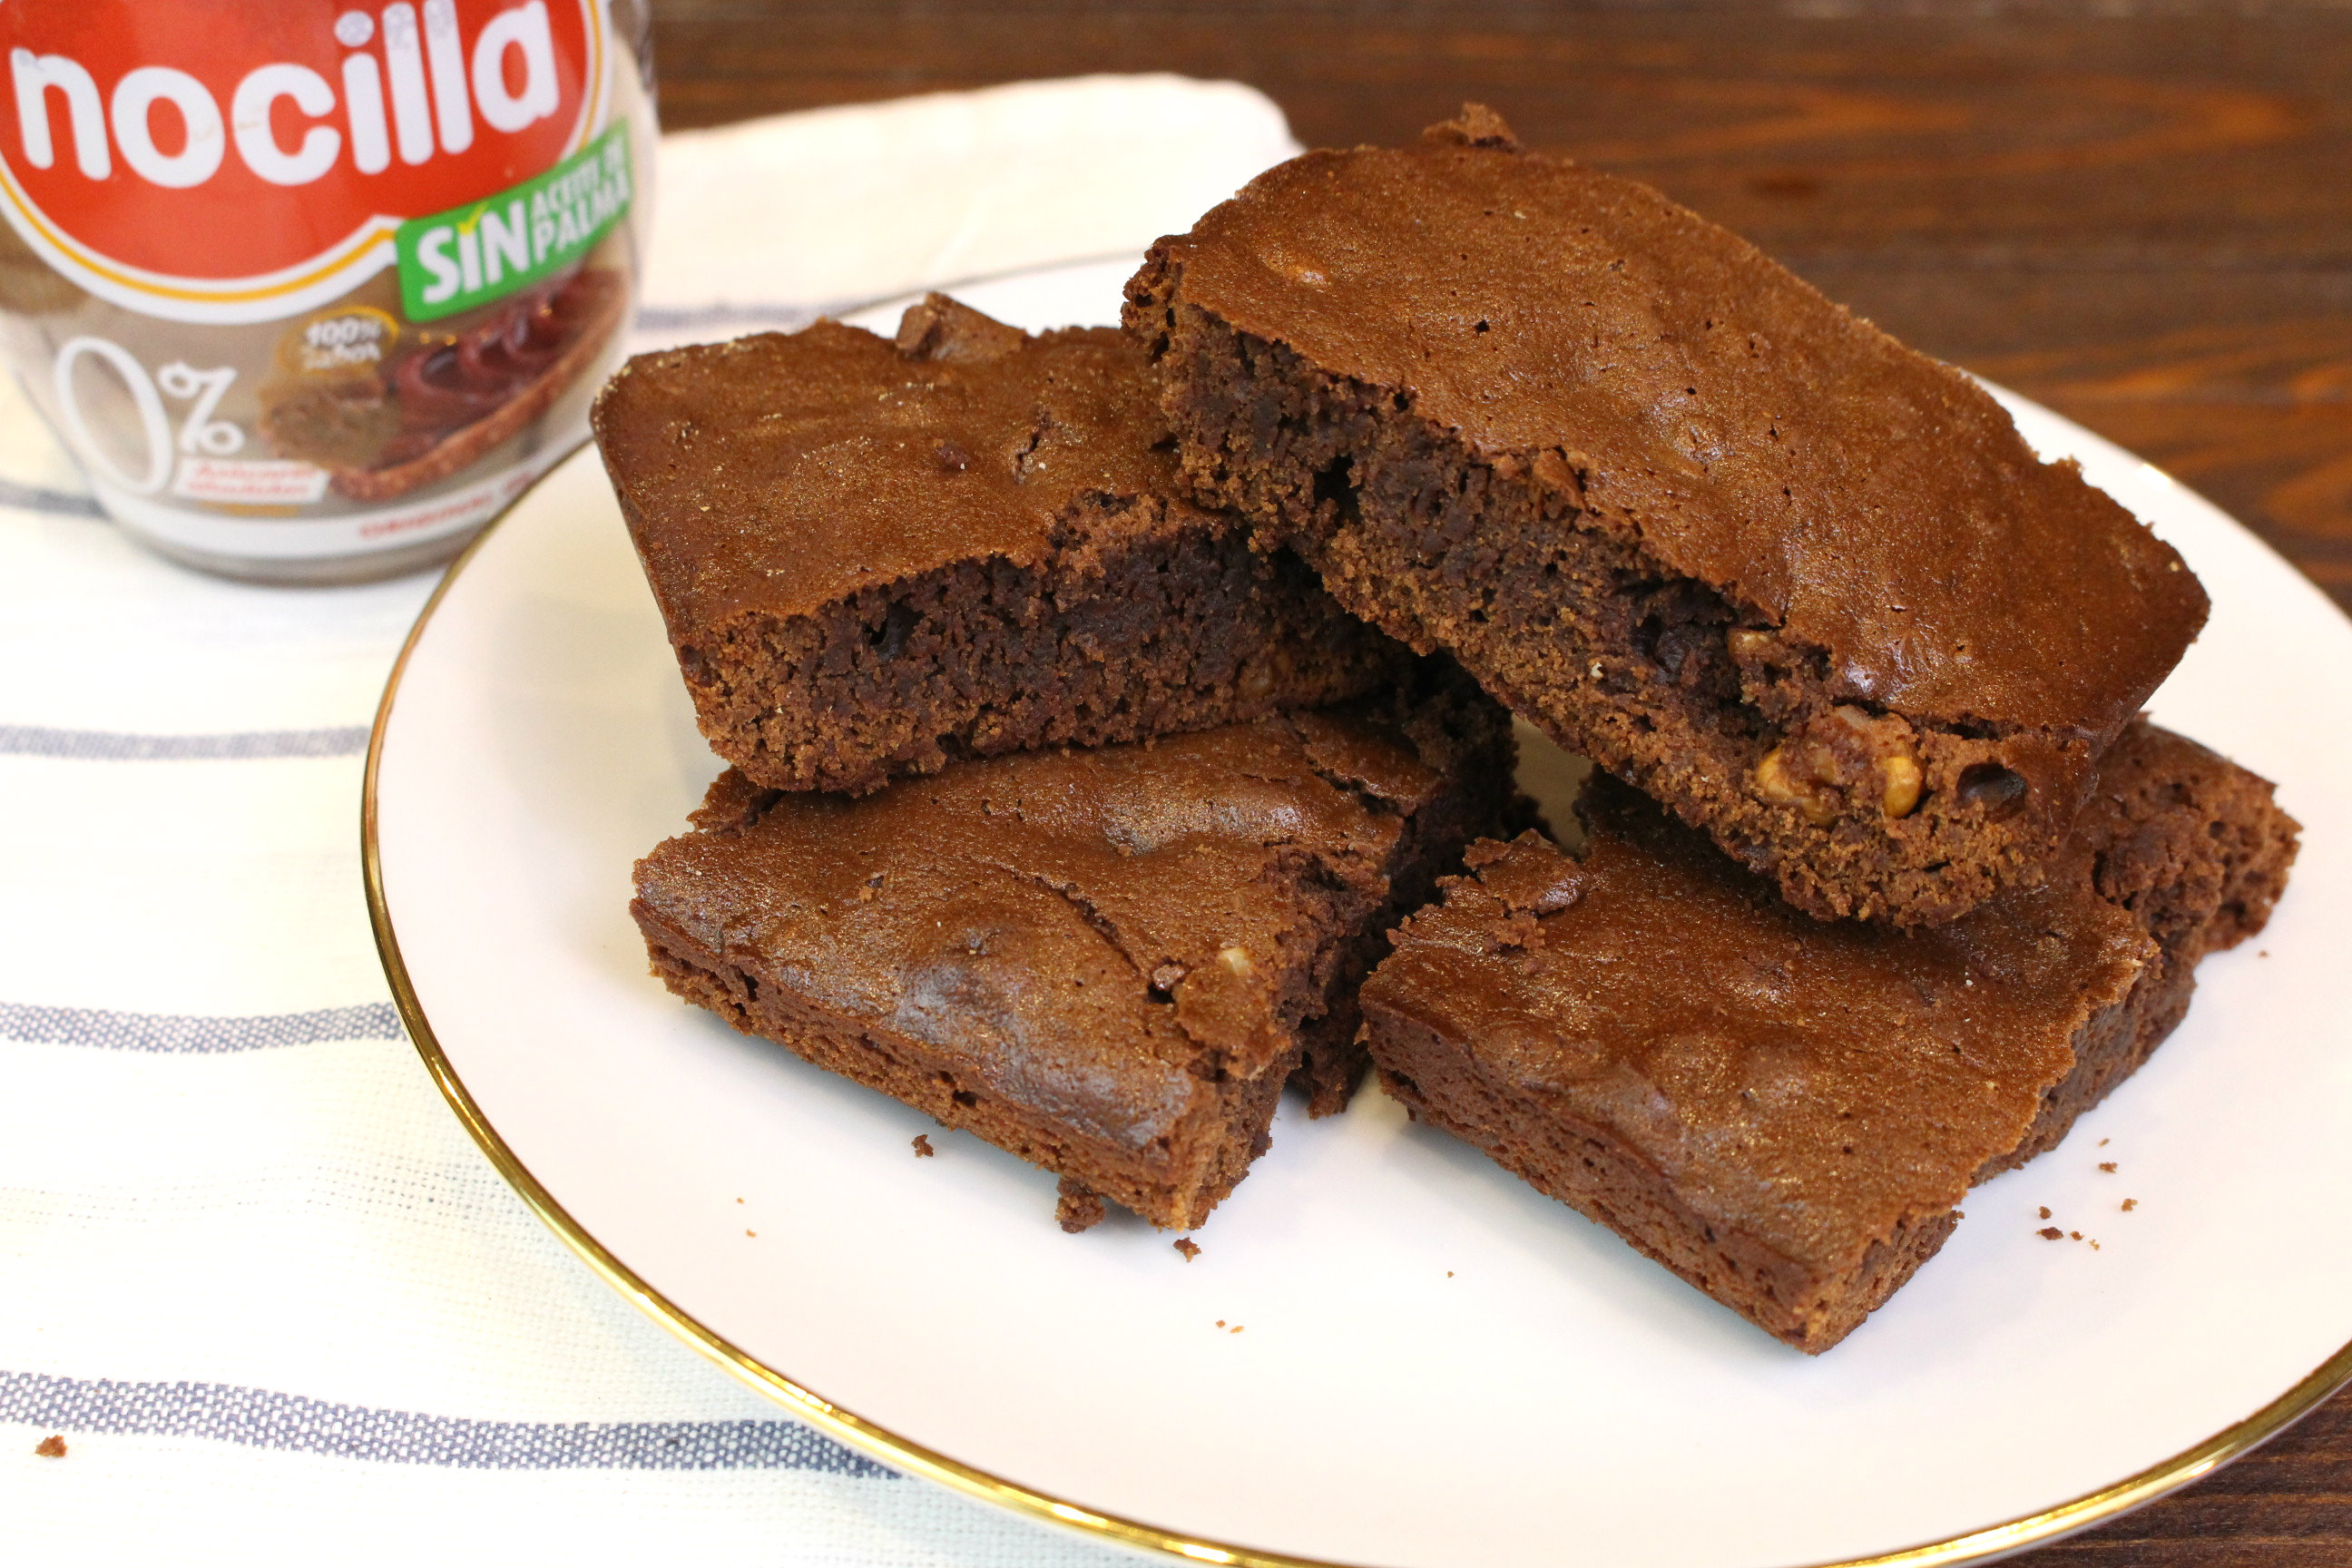 Receta de brownie de Nocilla con 3 ingredientes